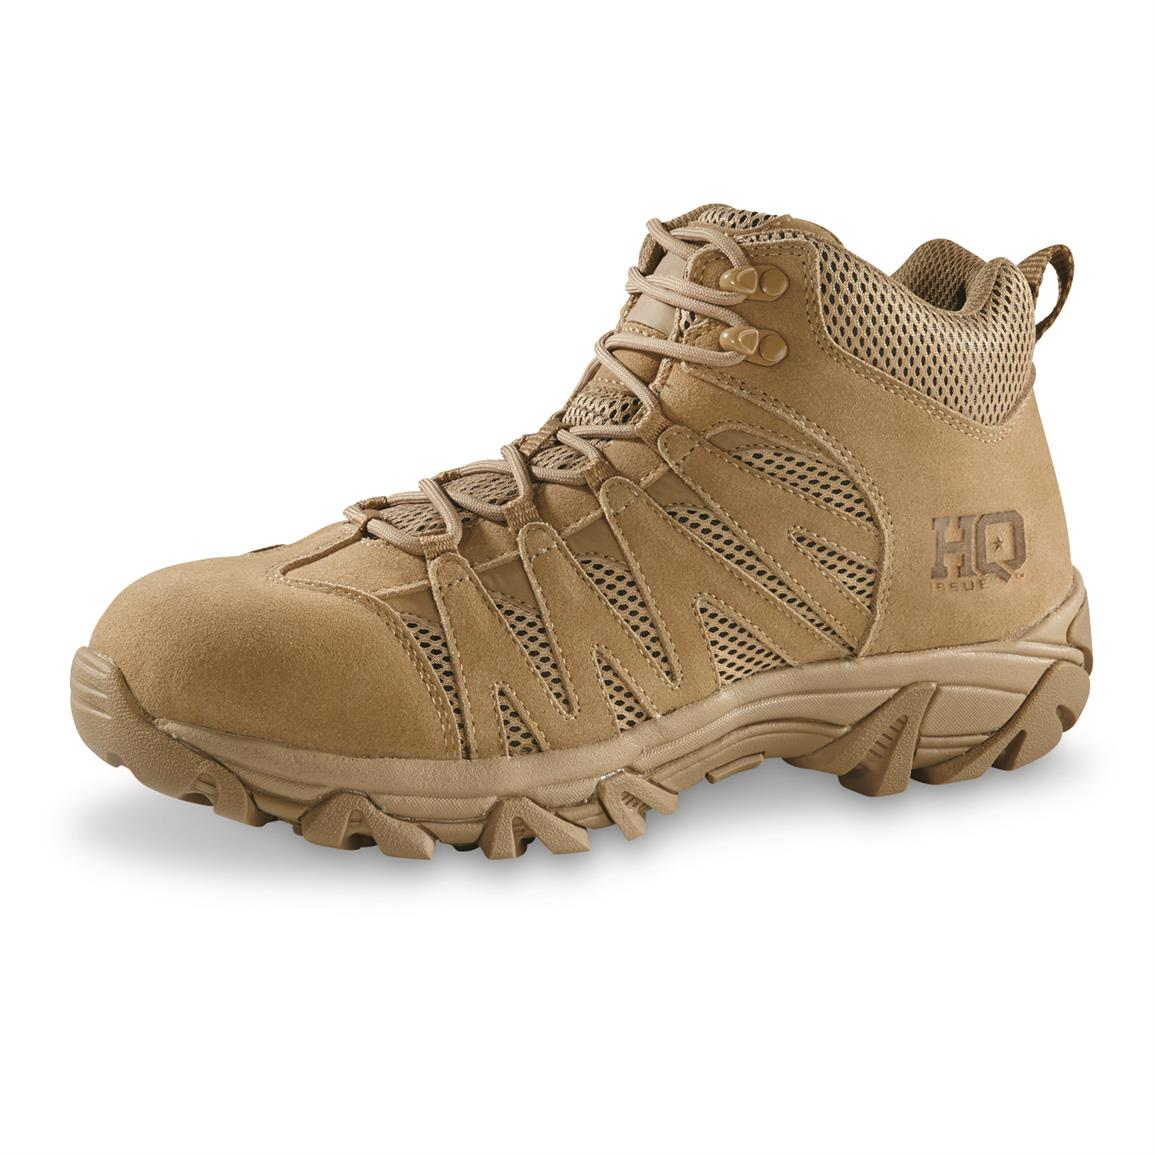 "HQ ISSUE Men's Canyon 6"" Waterproof Tactical Hiking Boots"